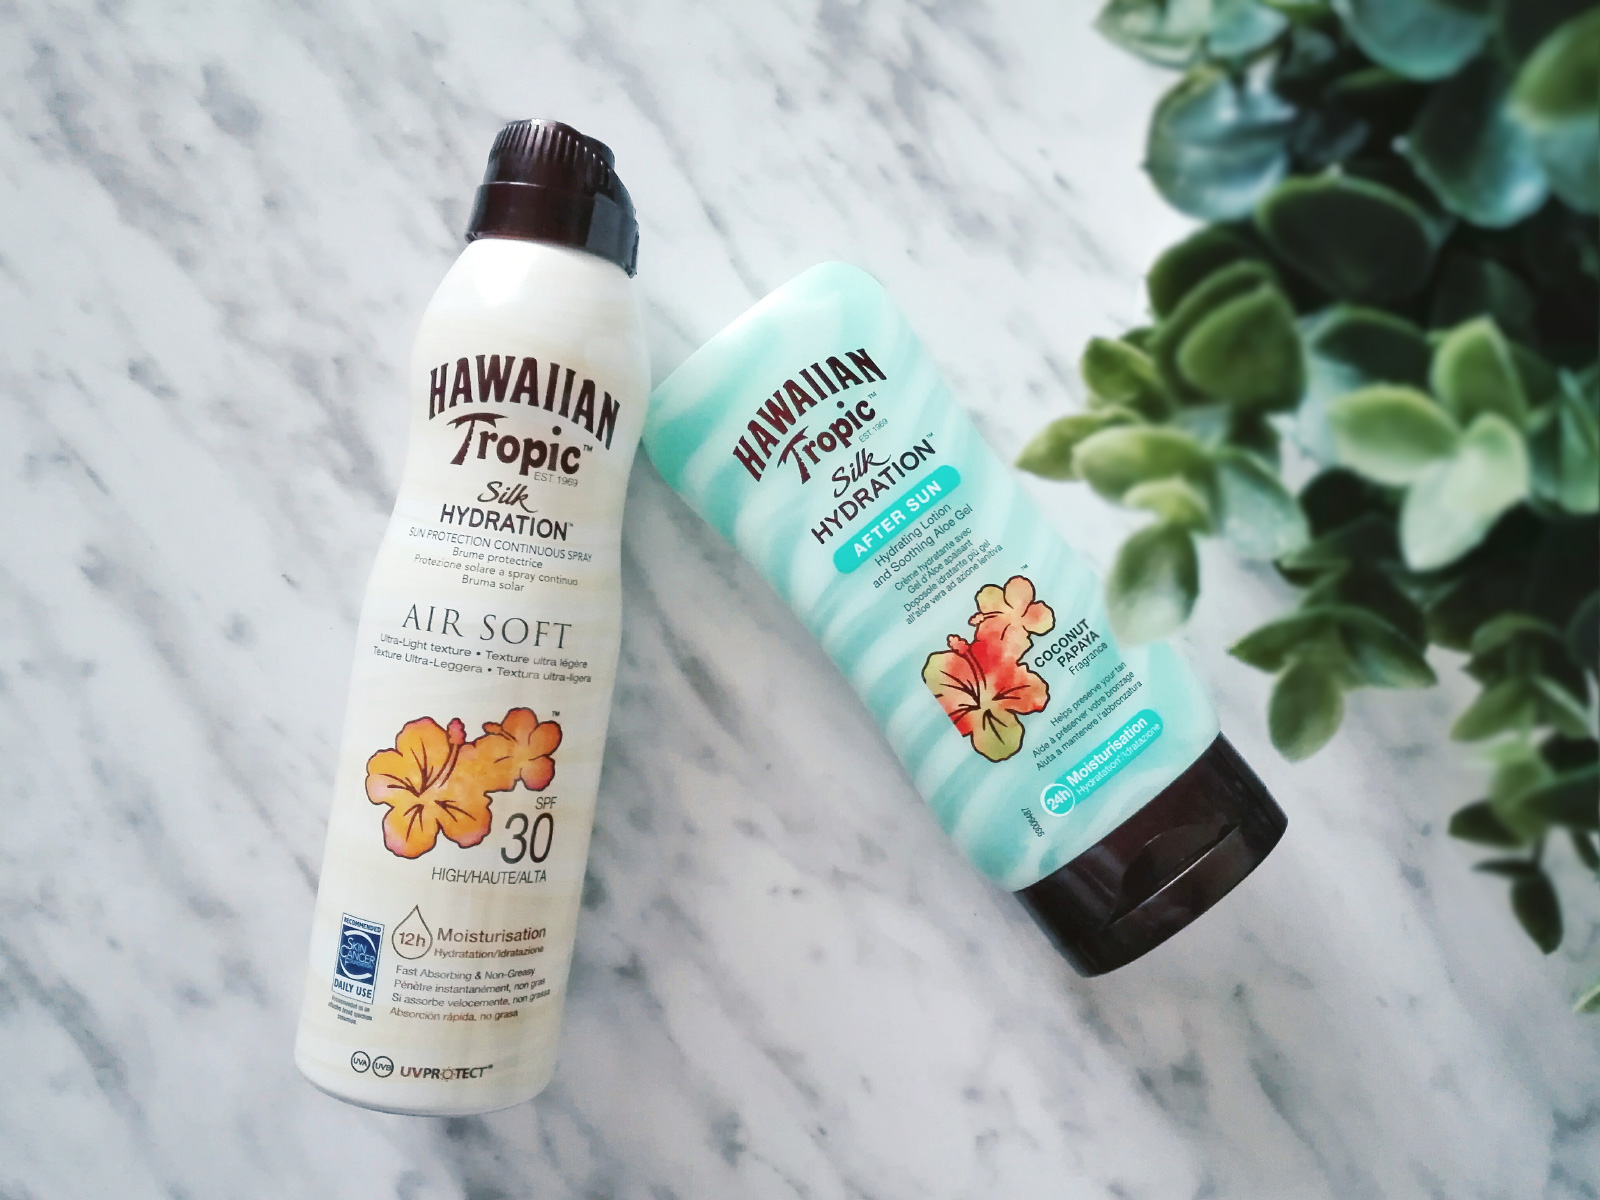 Hawaiian Tropic Silk Hydration Air Soft 30 After Sun #alohatherapy #hawaiiantropic beauty blog review protector solar SPF